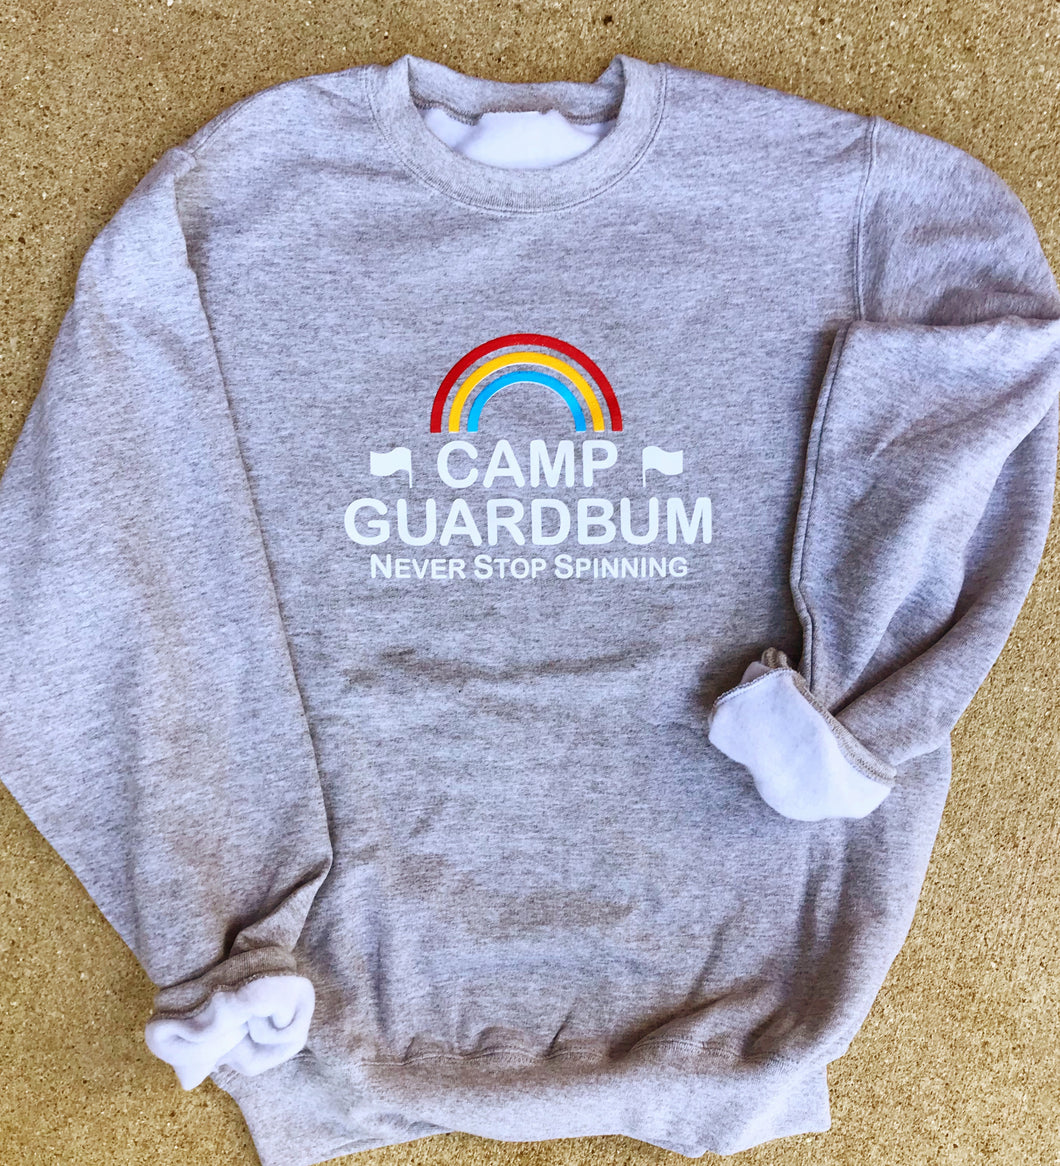 Camp Guard Bum Crewneck